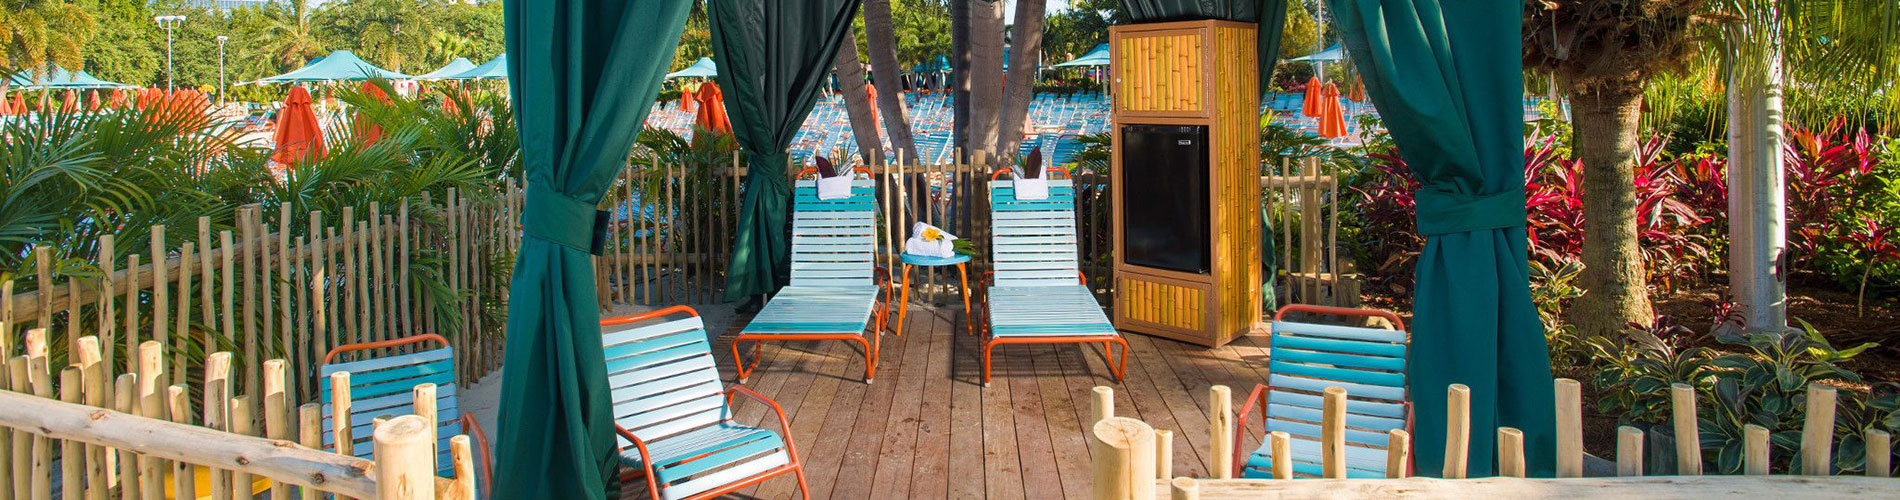 Private Cabanas available at Aquatica Orlando Water Park